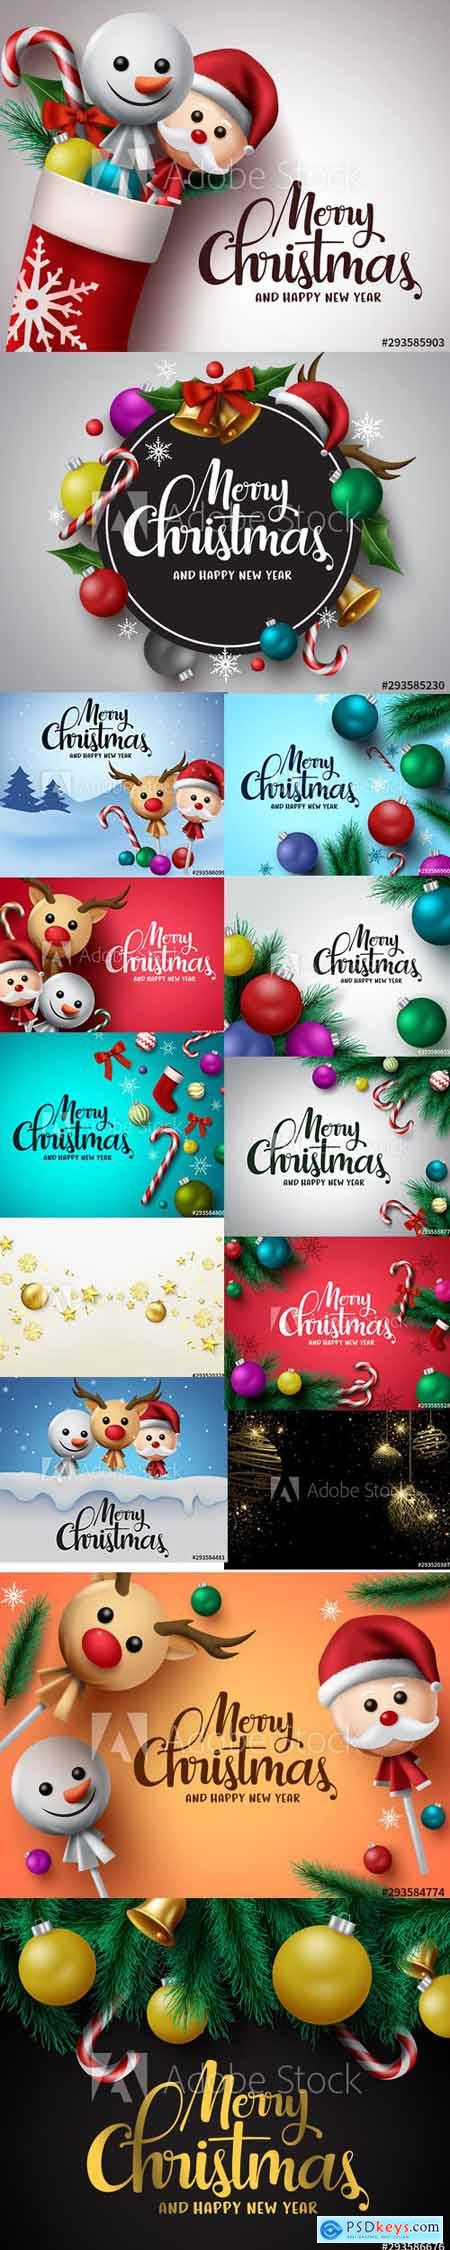 Vector Set - Merry Christmas and Happy New Year Backgrounds Template with Decor